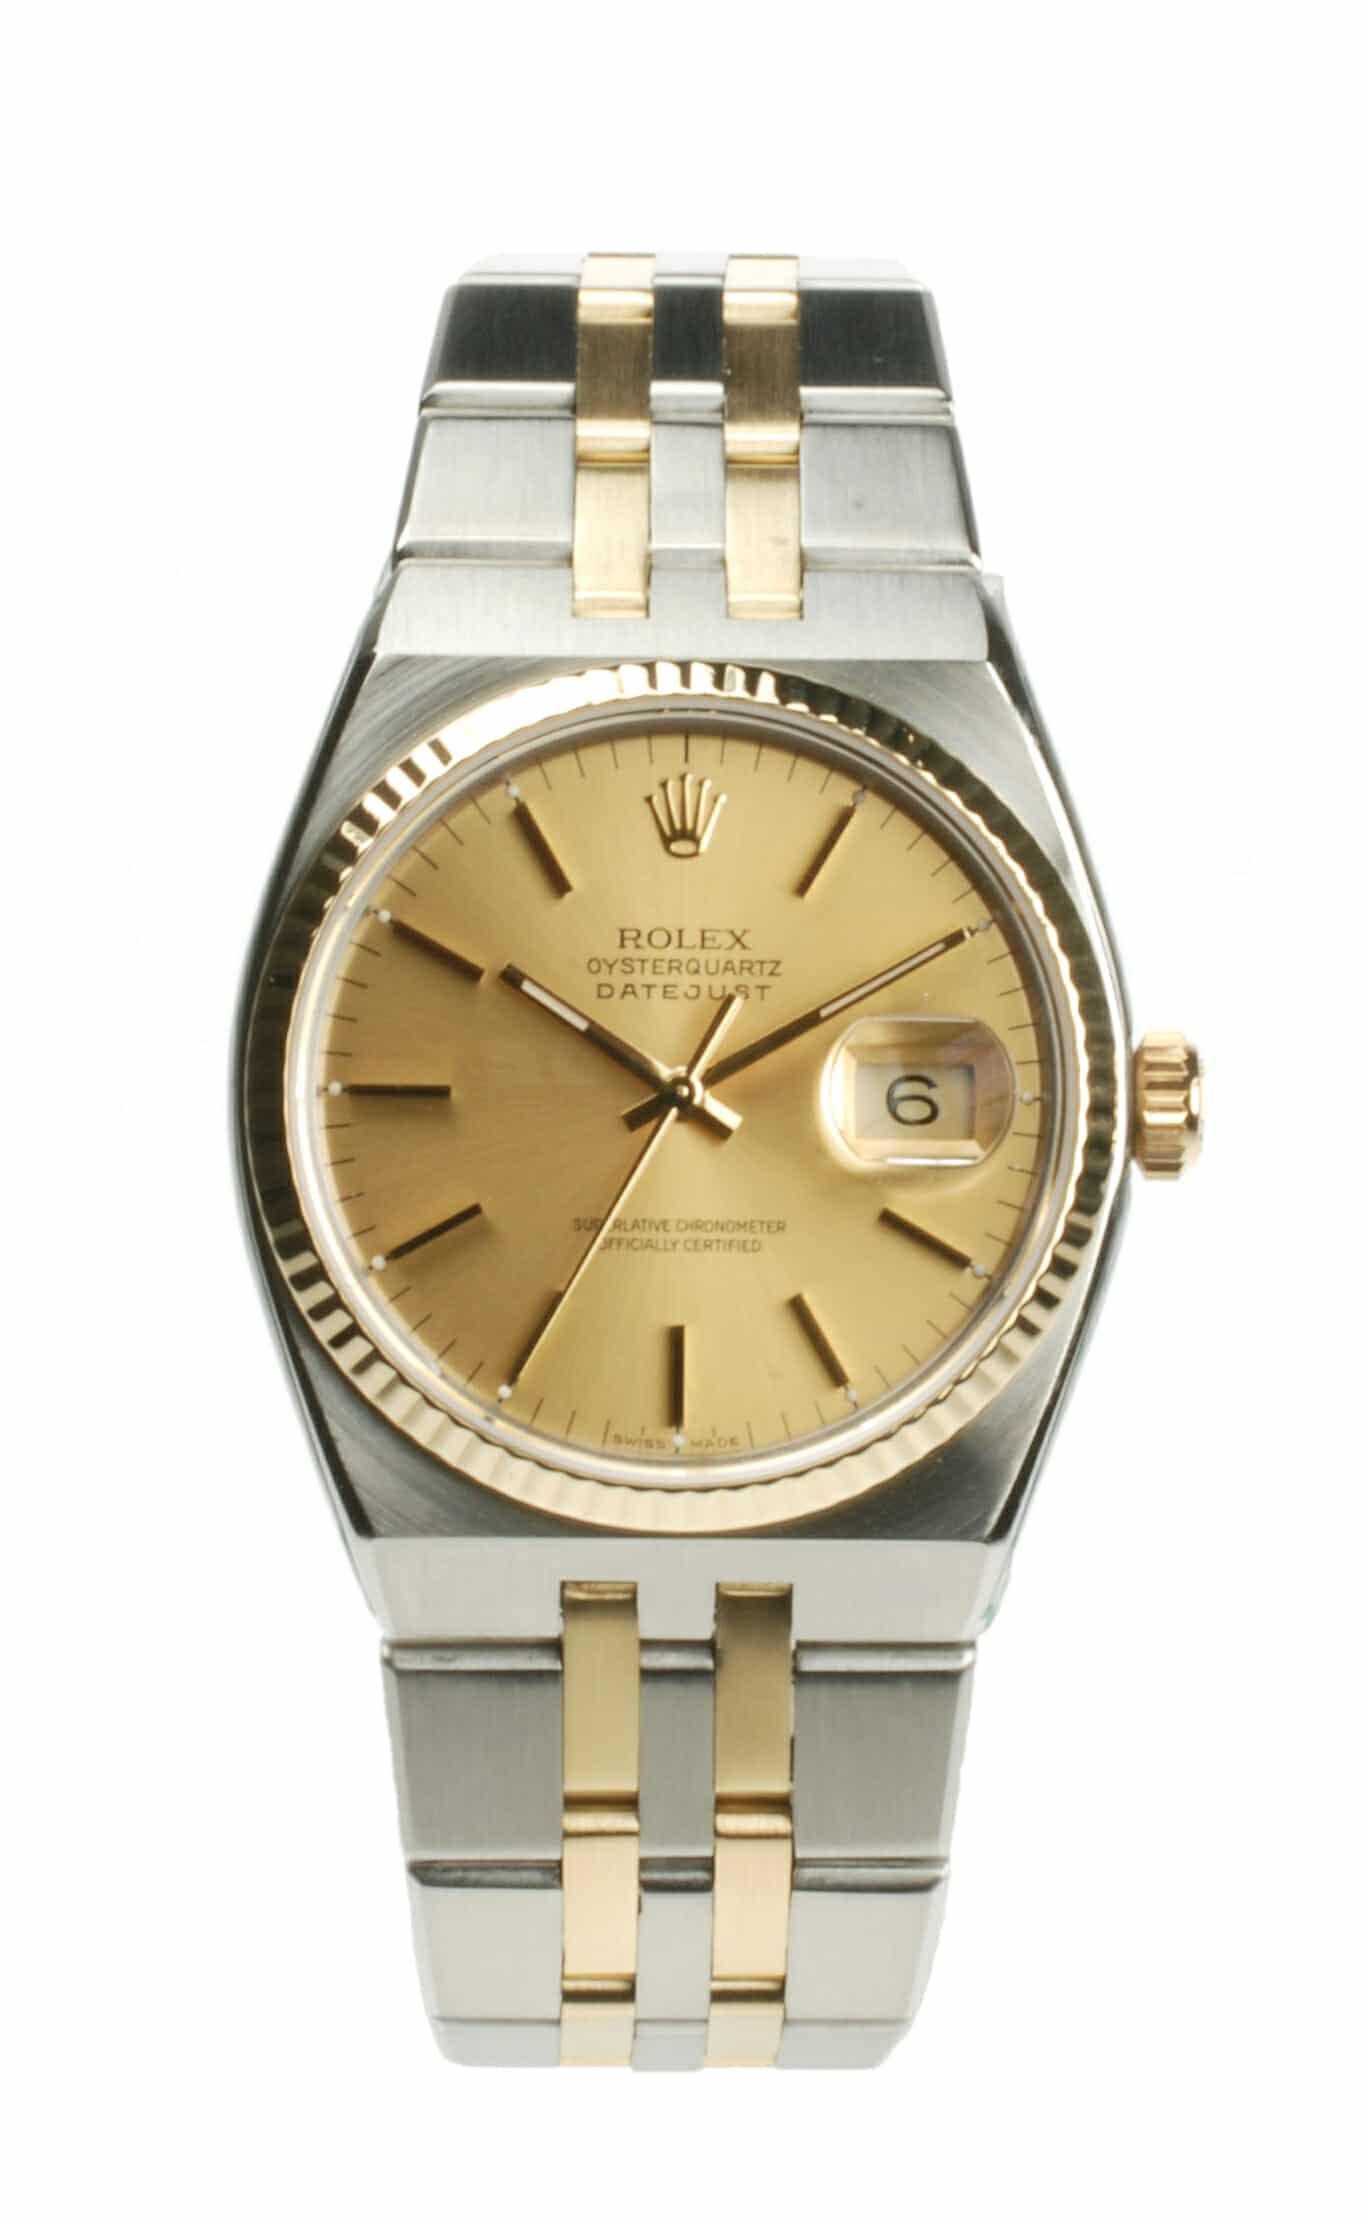 Rolex Oyster Quartz 17013 From 1981 Pre-Owned Watch